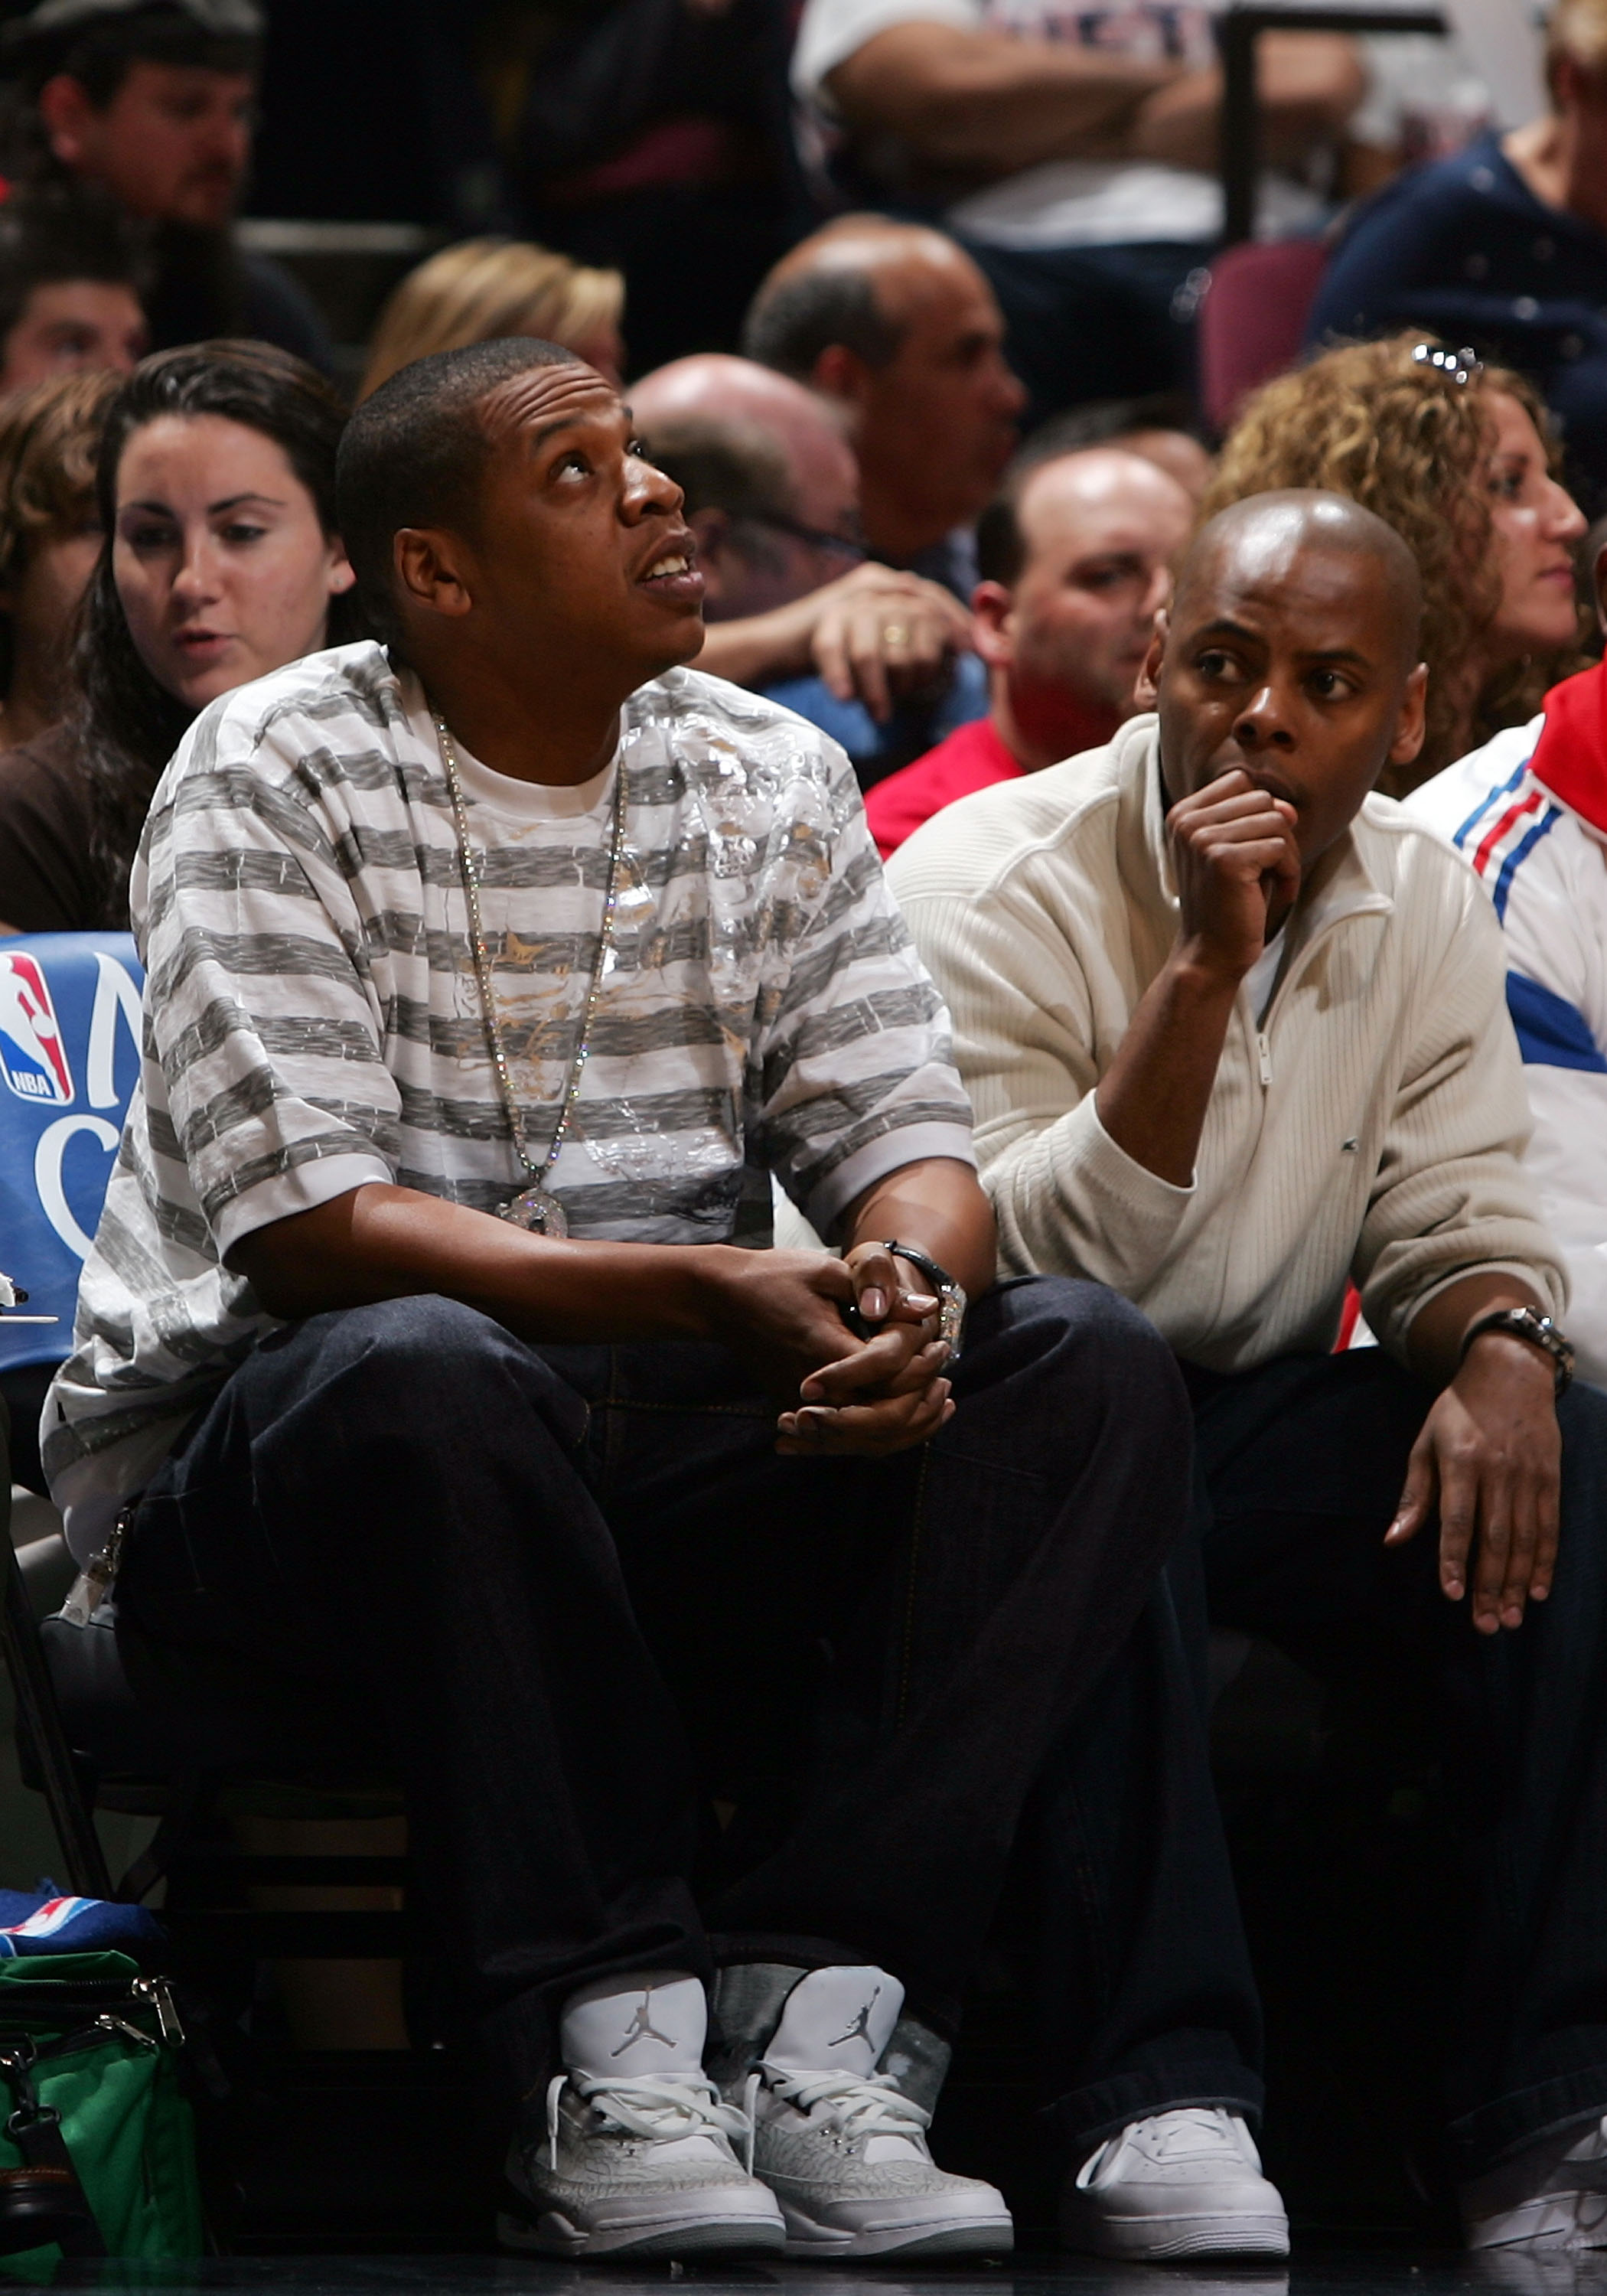 EAST RUTHERFORD, NJ - MAY 12:  Rapper Jay-Z (L) watches as the New Jersey Nets take on the Cleveland Cavaliers during Game Three of the Eastern Conference Semifinals during the 2007 NBA Playoffs on May 12, 2007 at the Continental Airlines Arena in the Mea